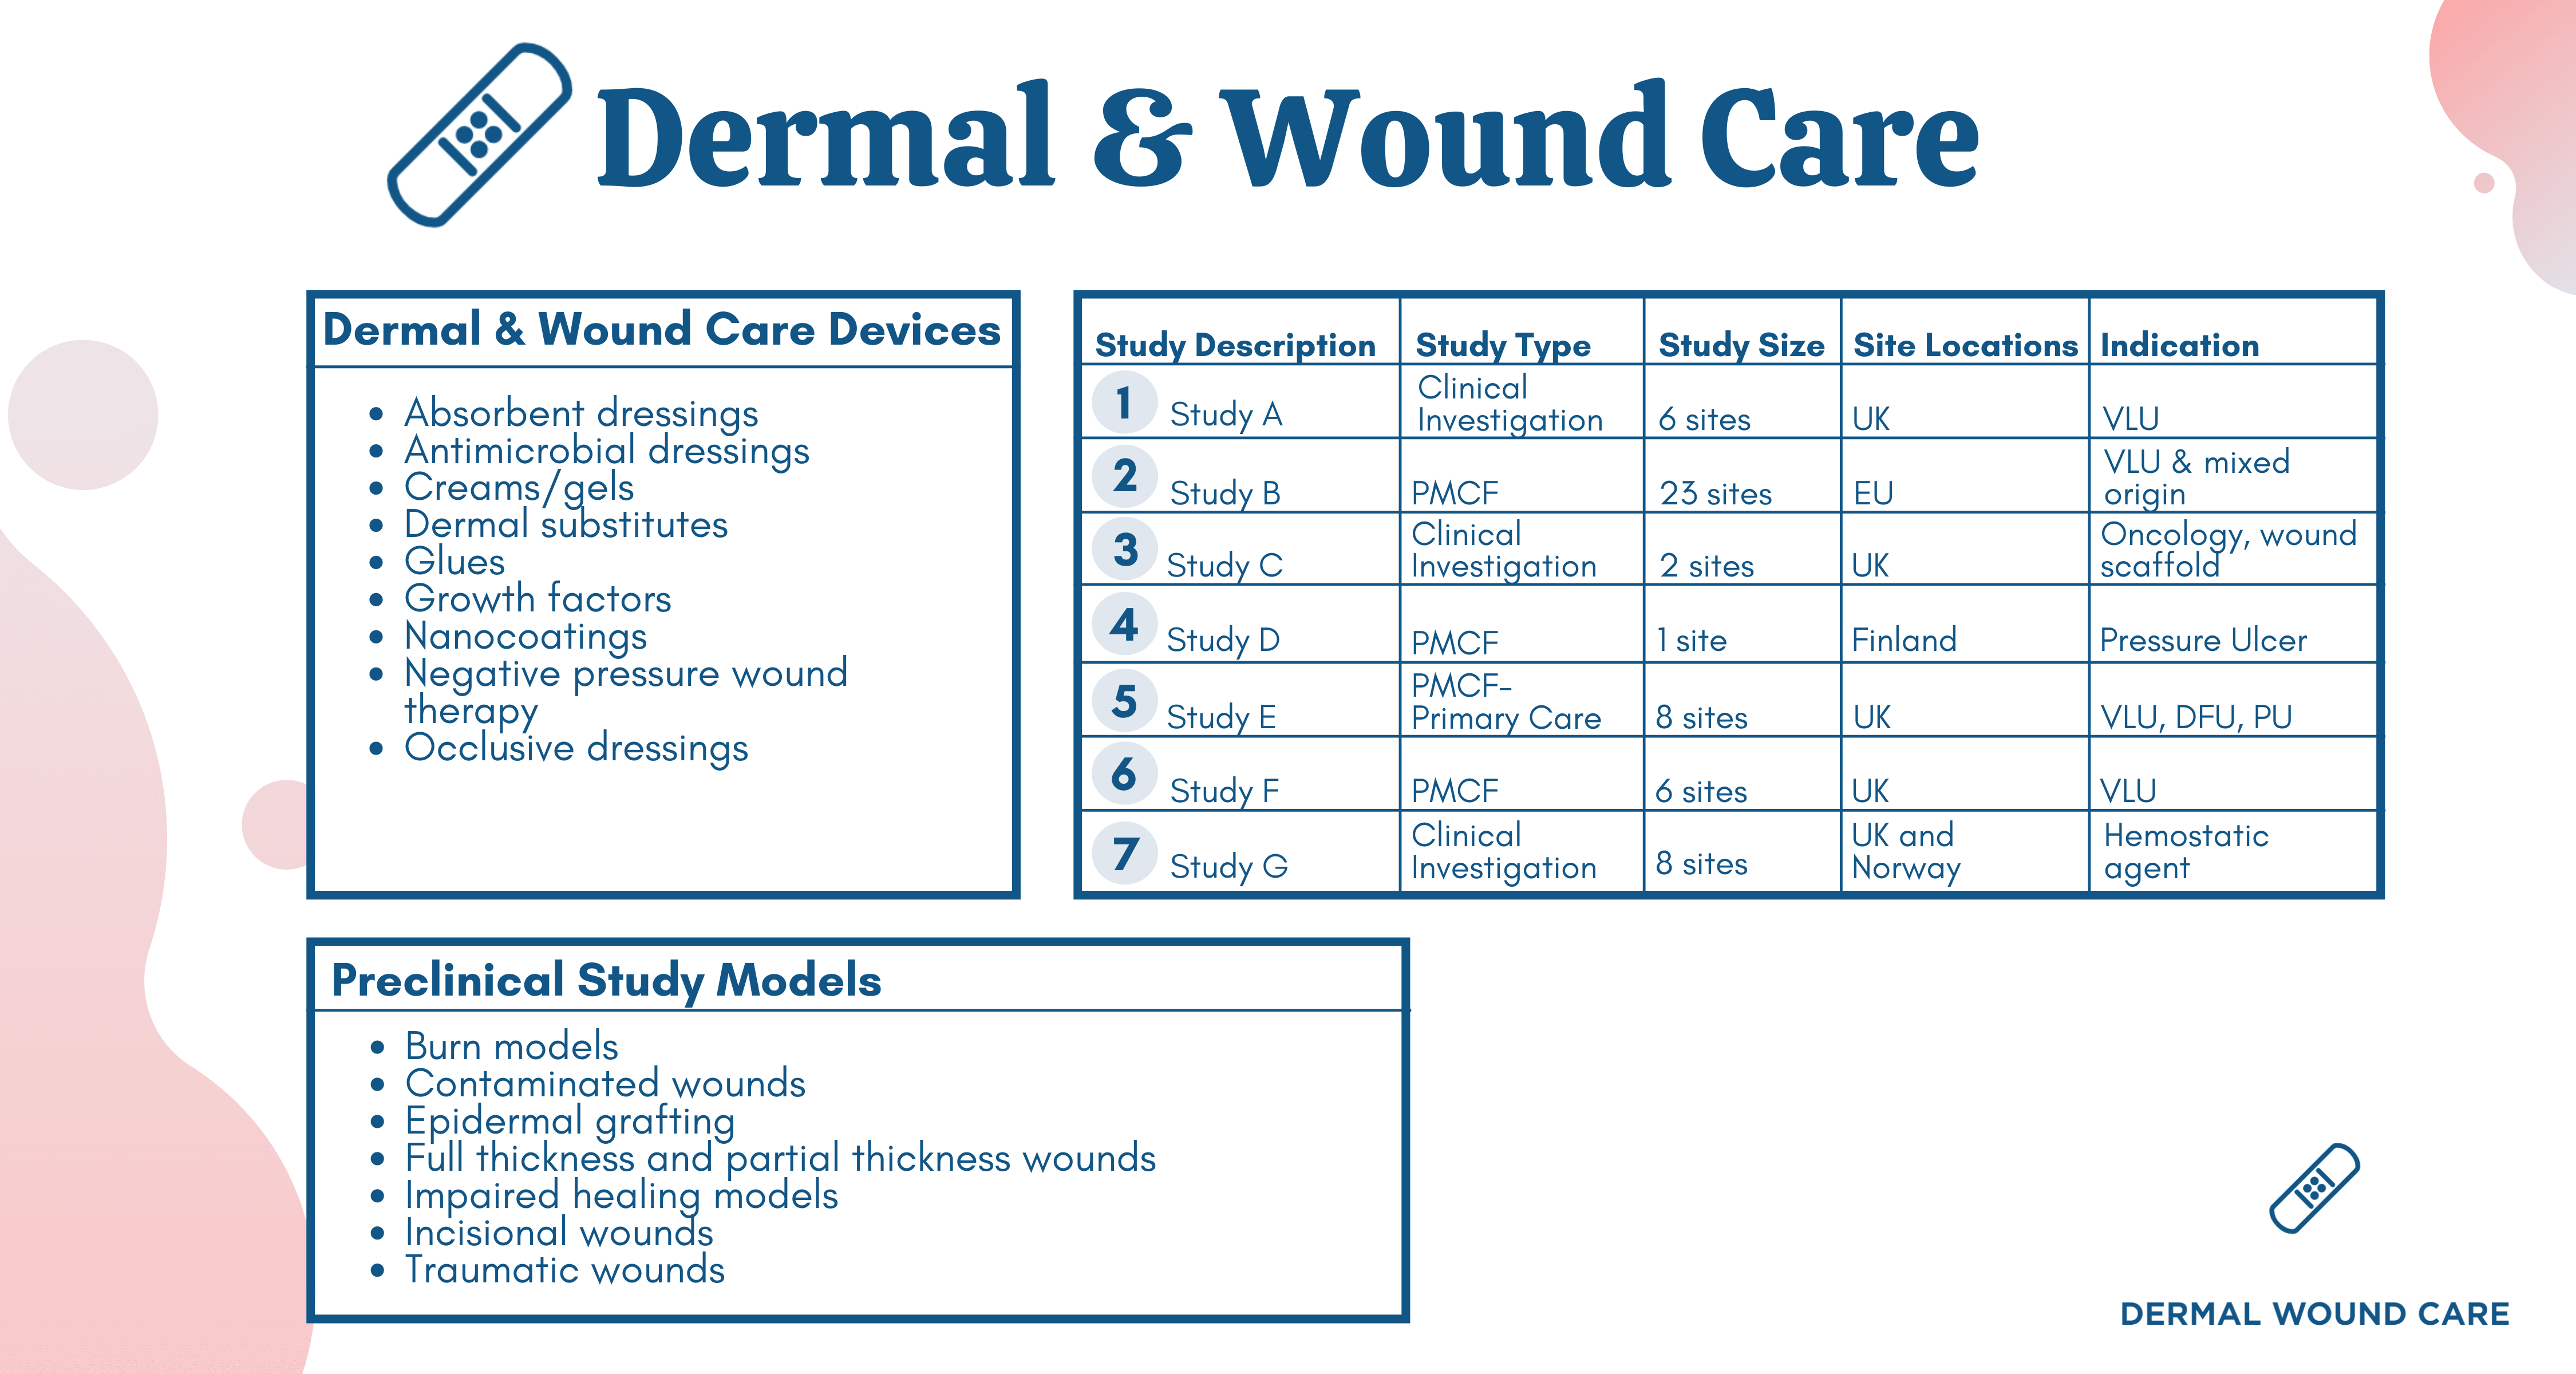 NAMSA - Dermal and Wound Care CRO